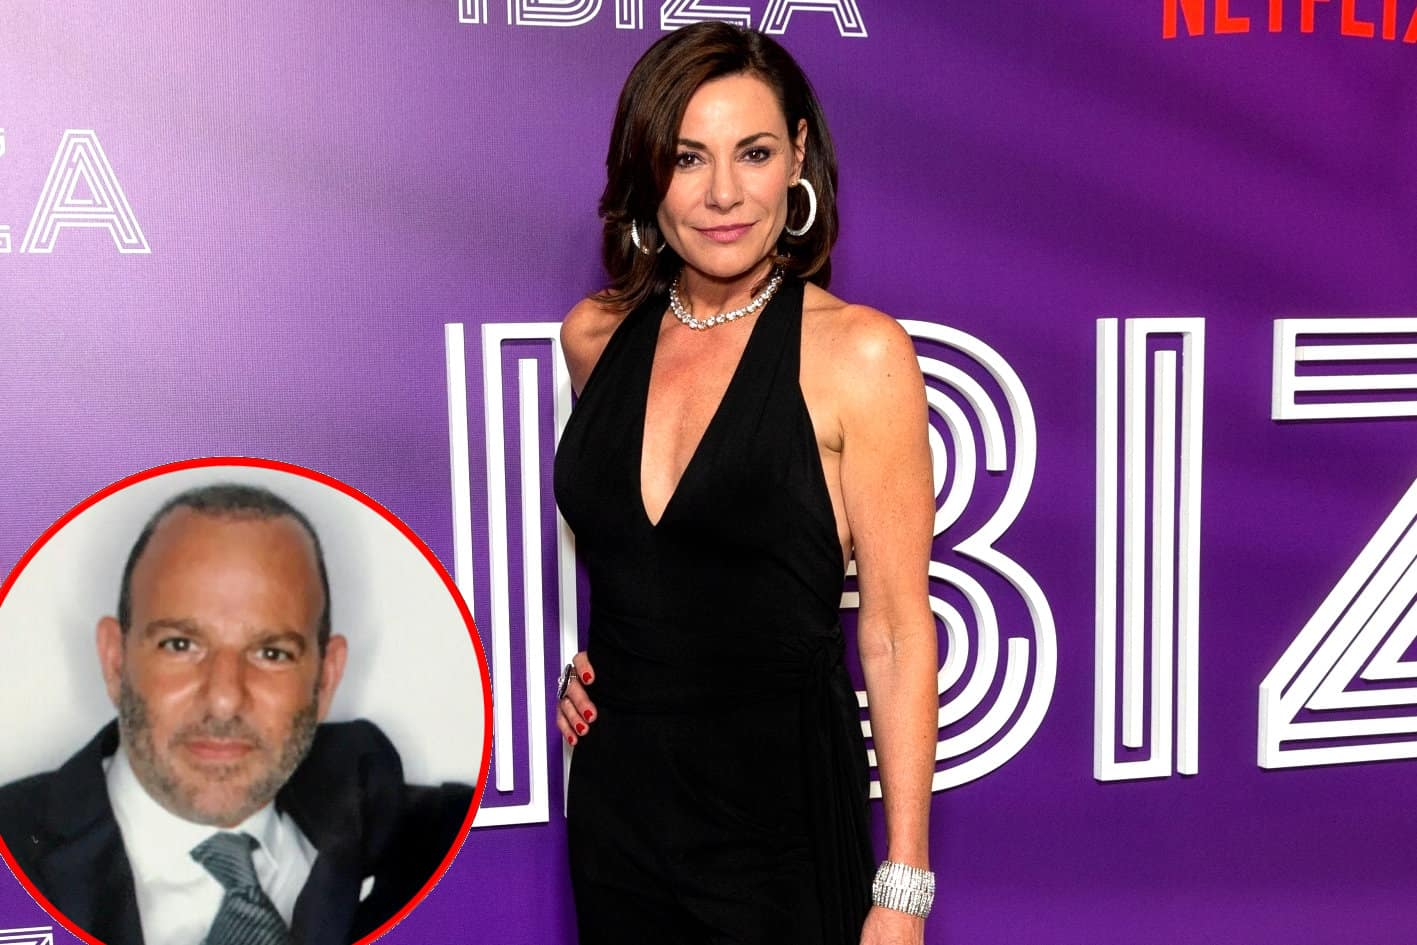 RHONY Luann de Lesseps dumped by boyfriend Rich Super